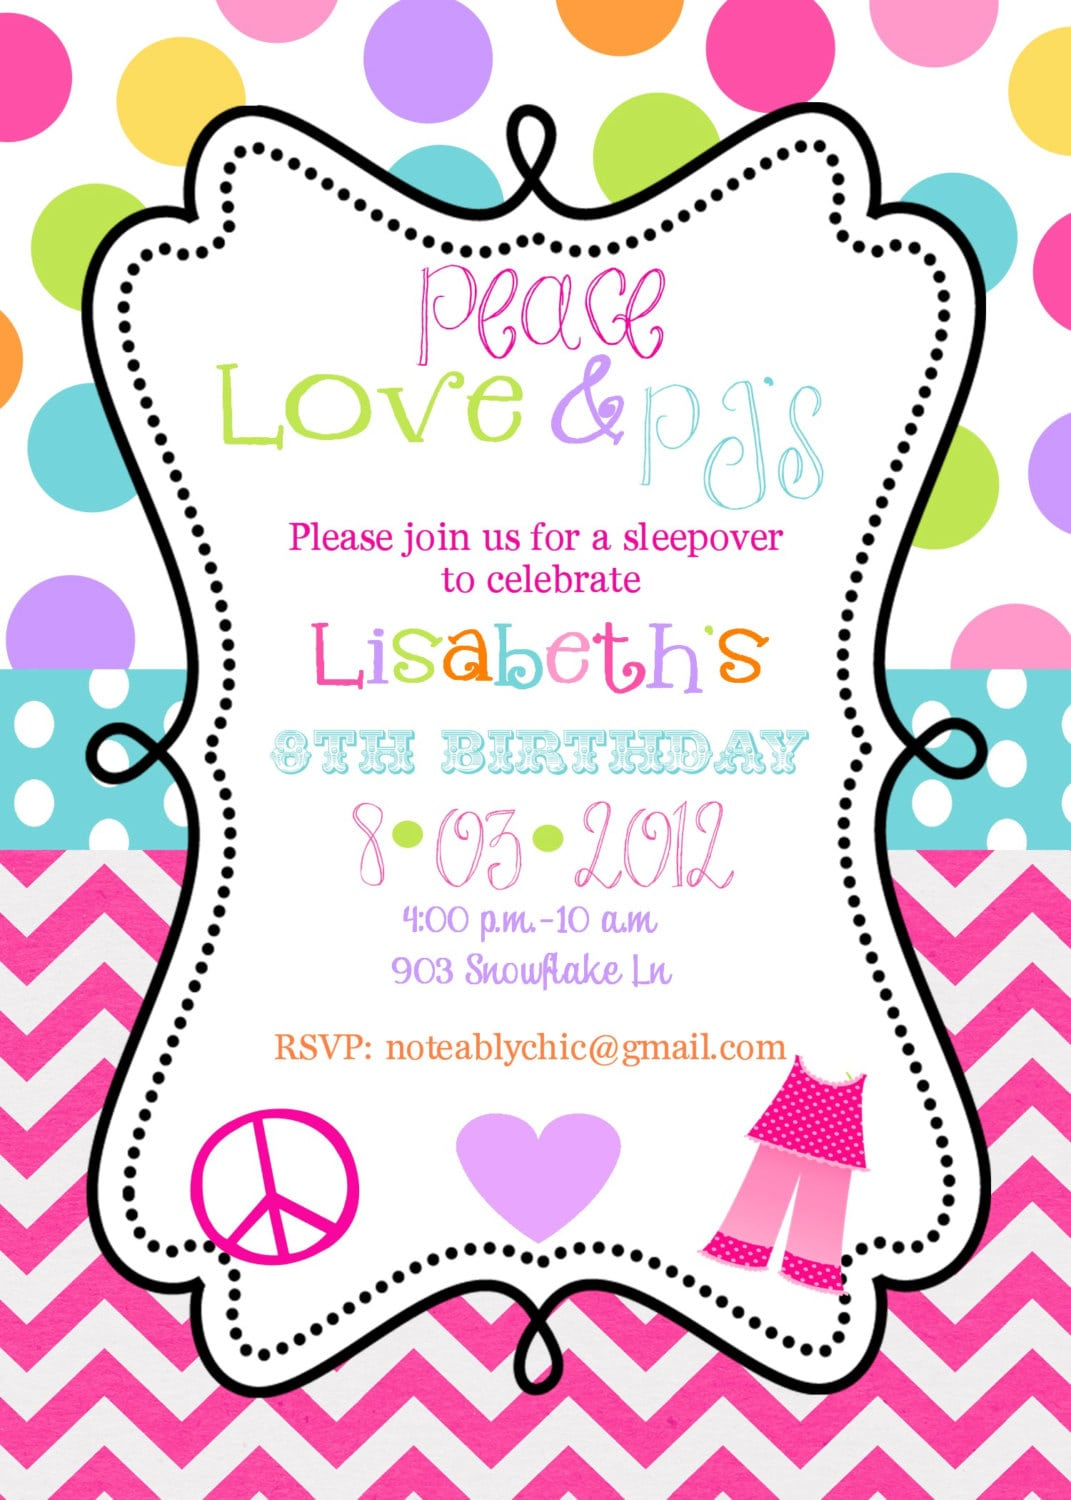 Downloadable Birthday Party Invitations